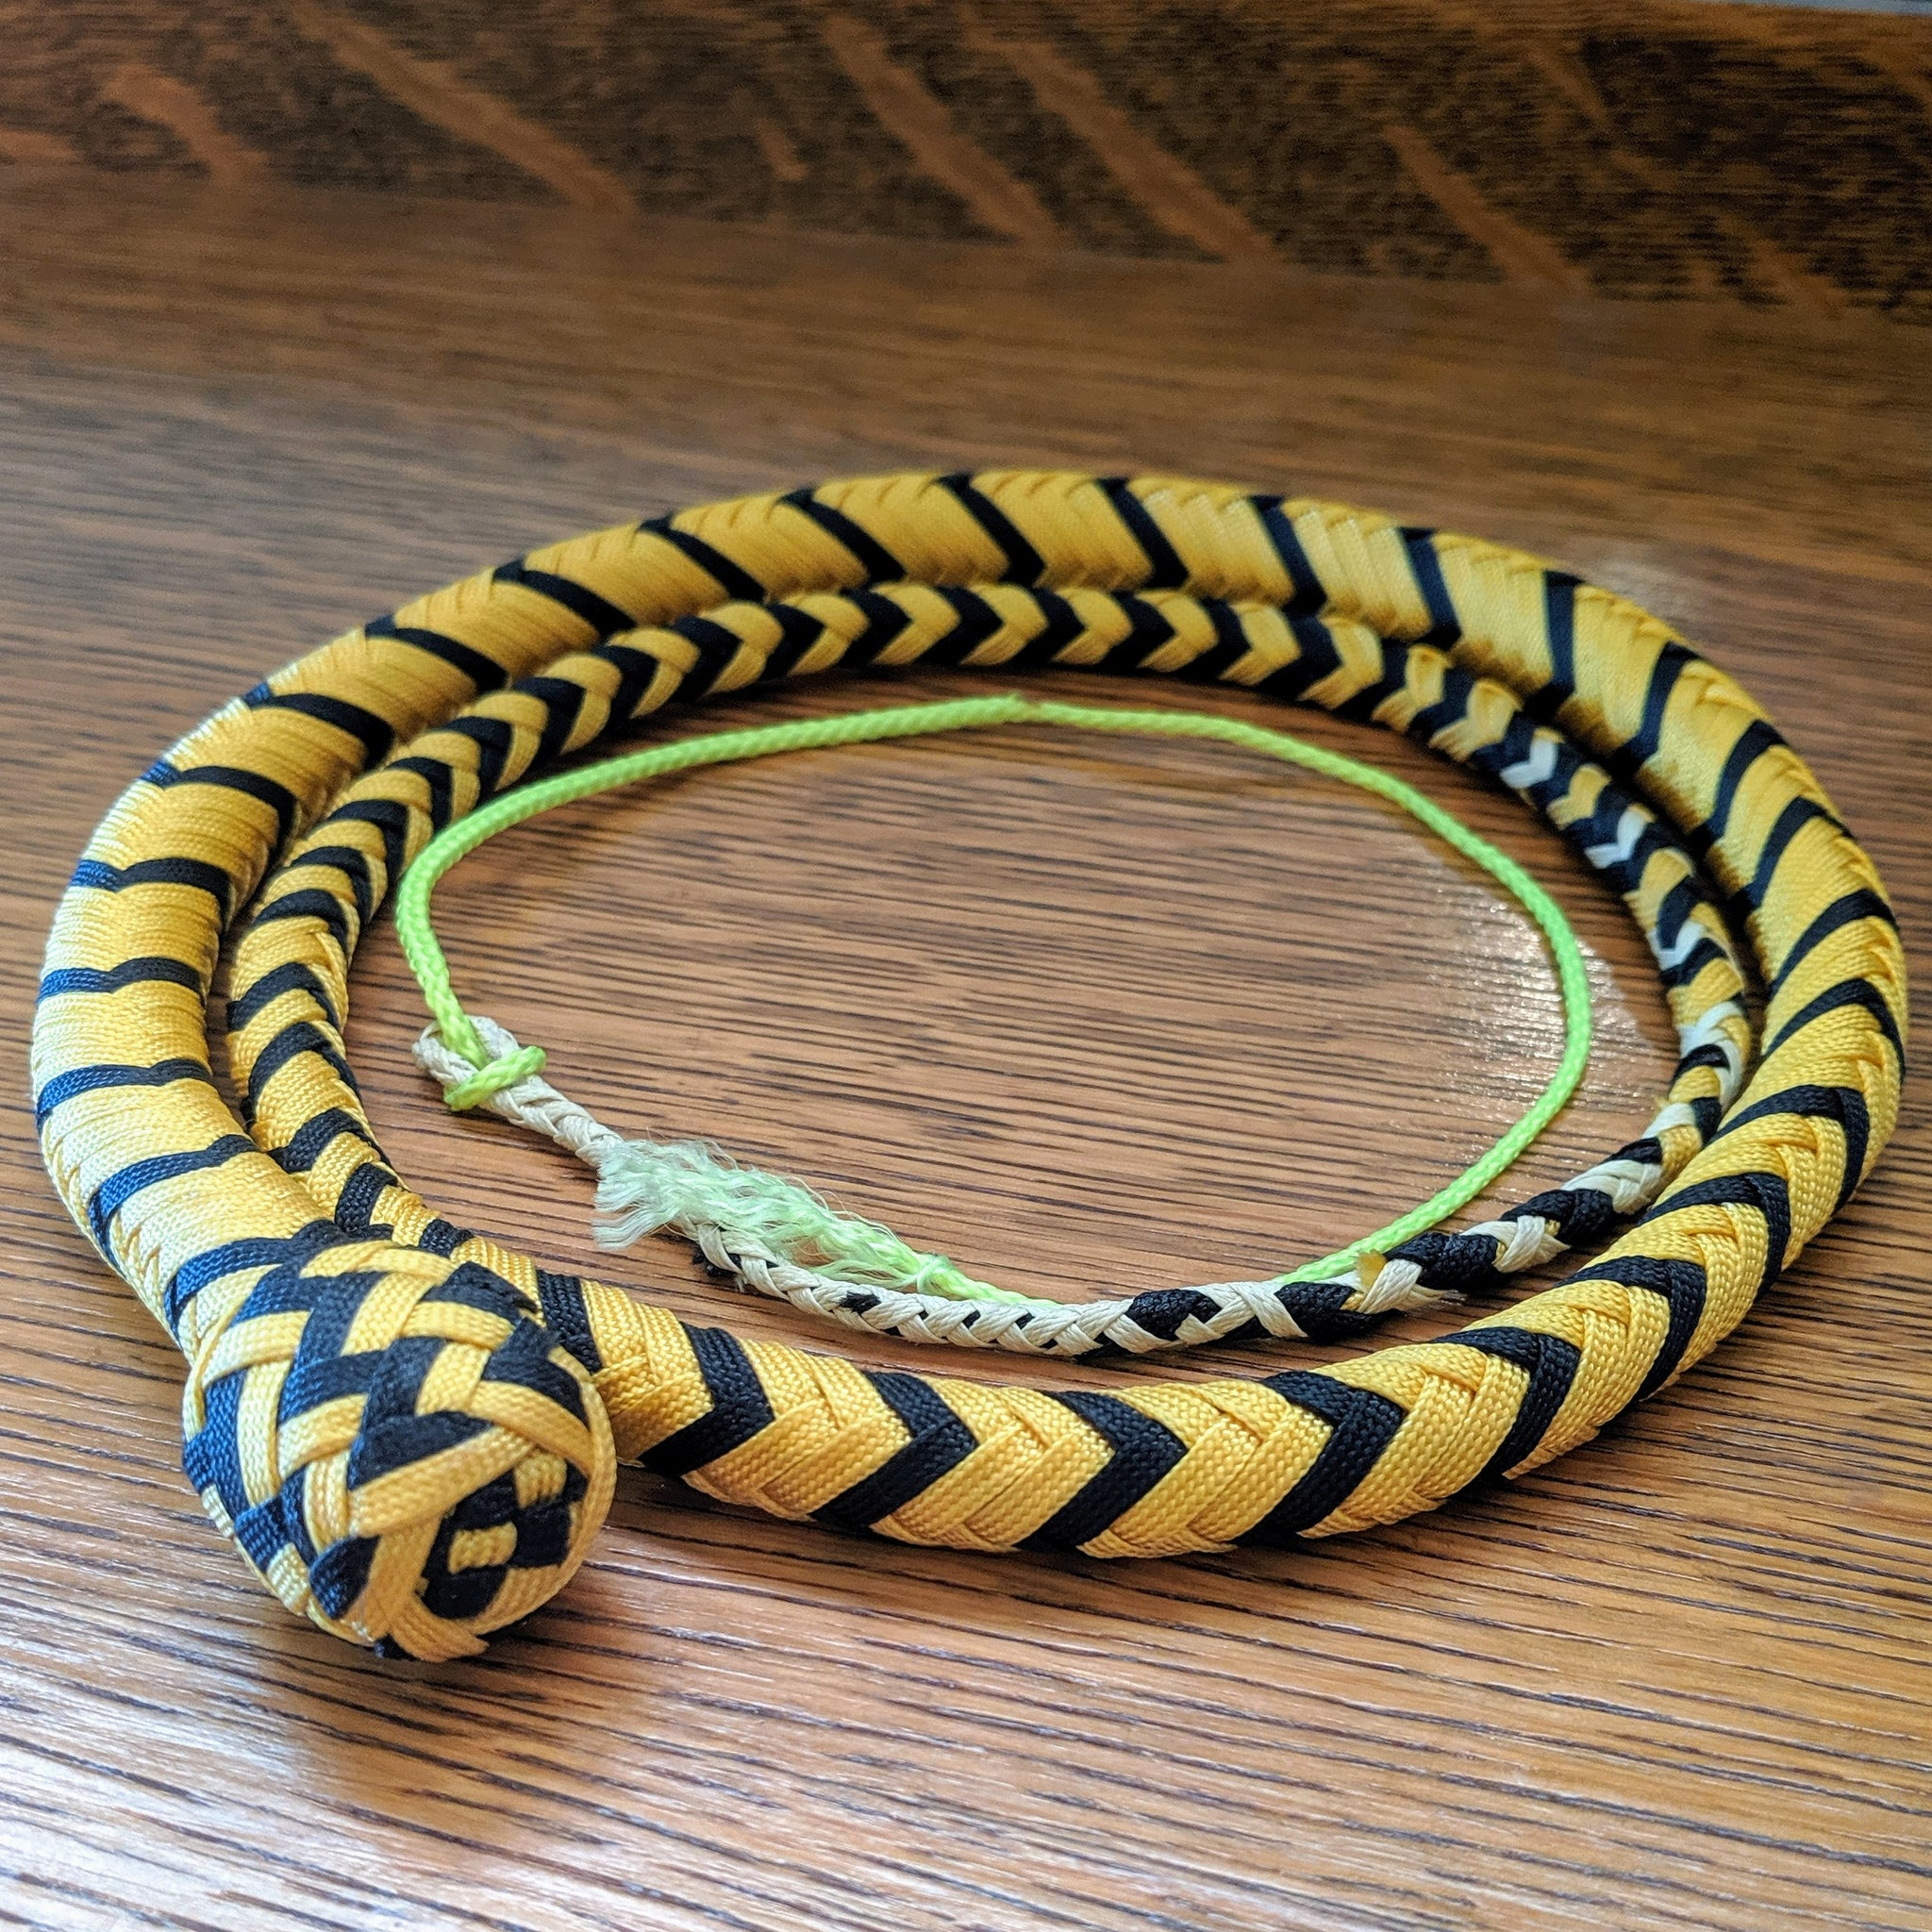 3ft Target Pocket Snake/Signal Whip - Paracord